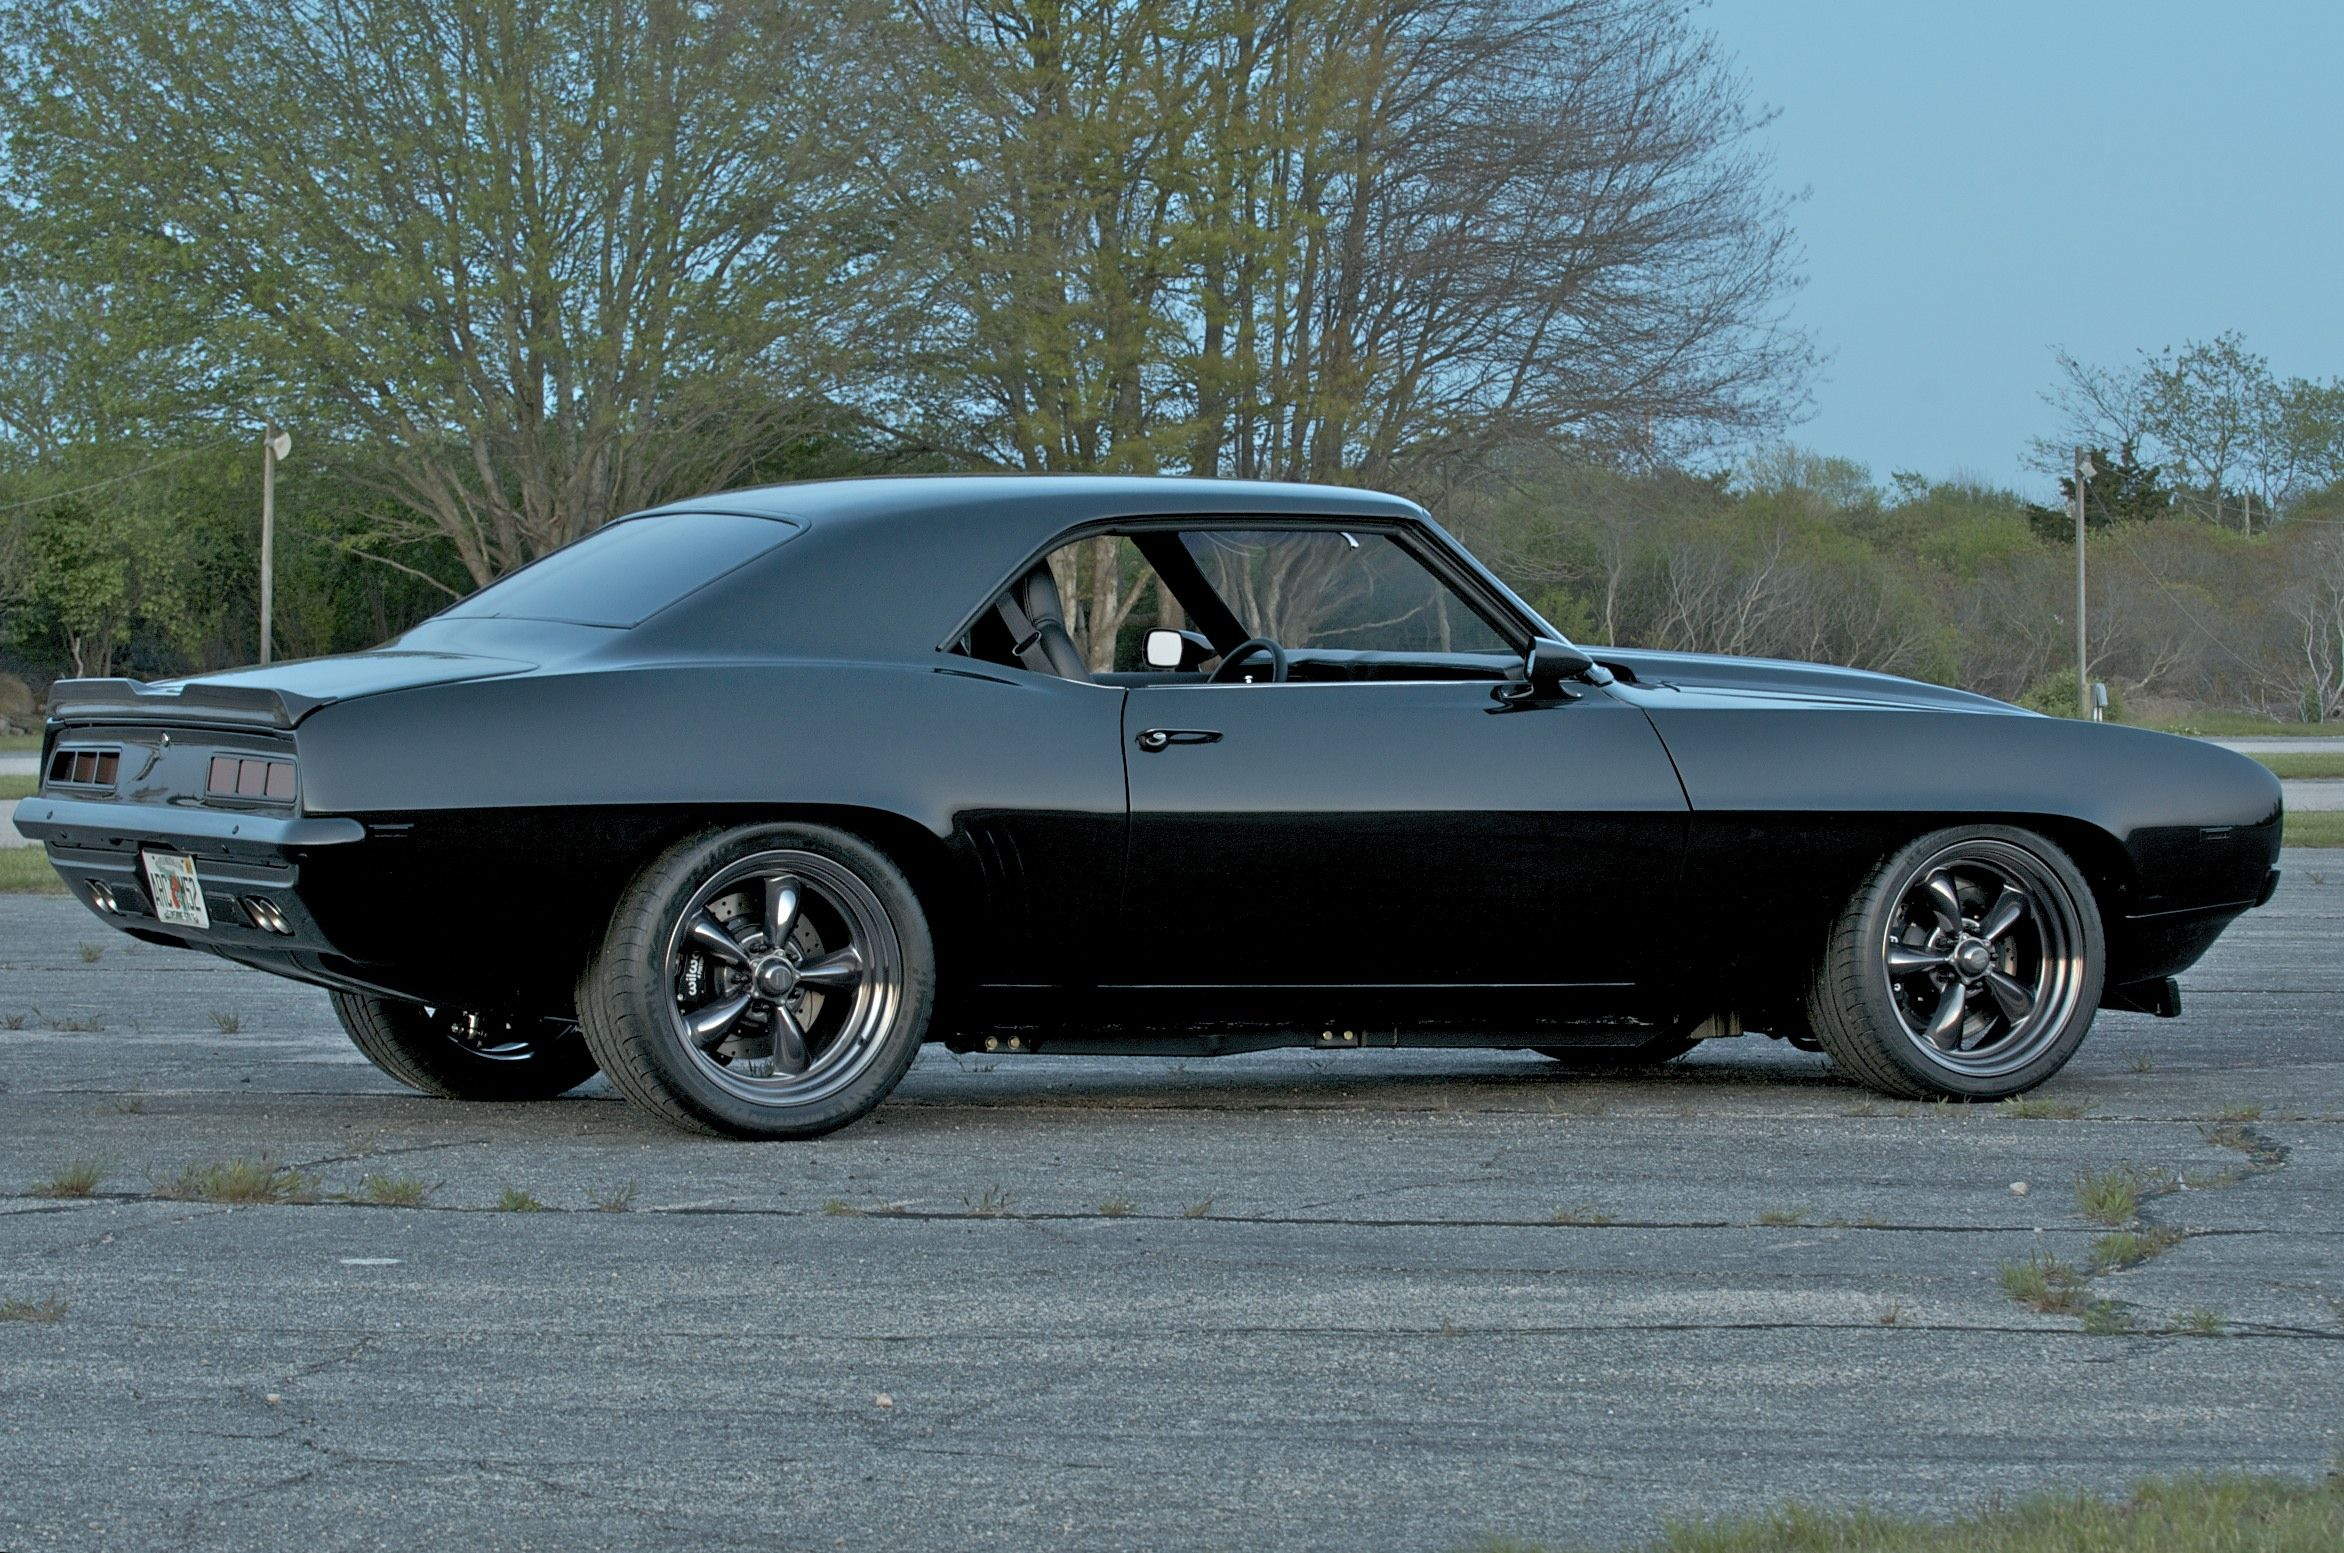 Pin Auf Classic Muscle Cars